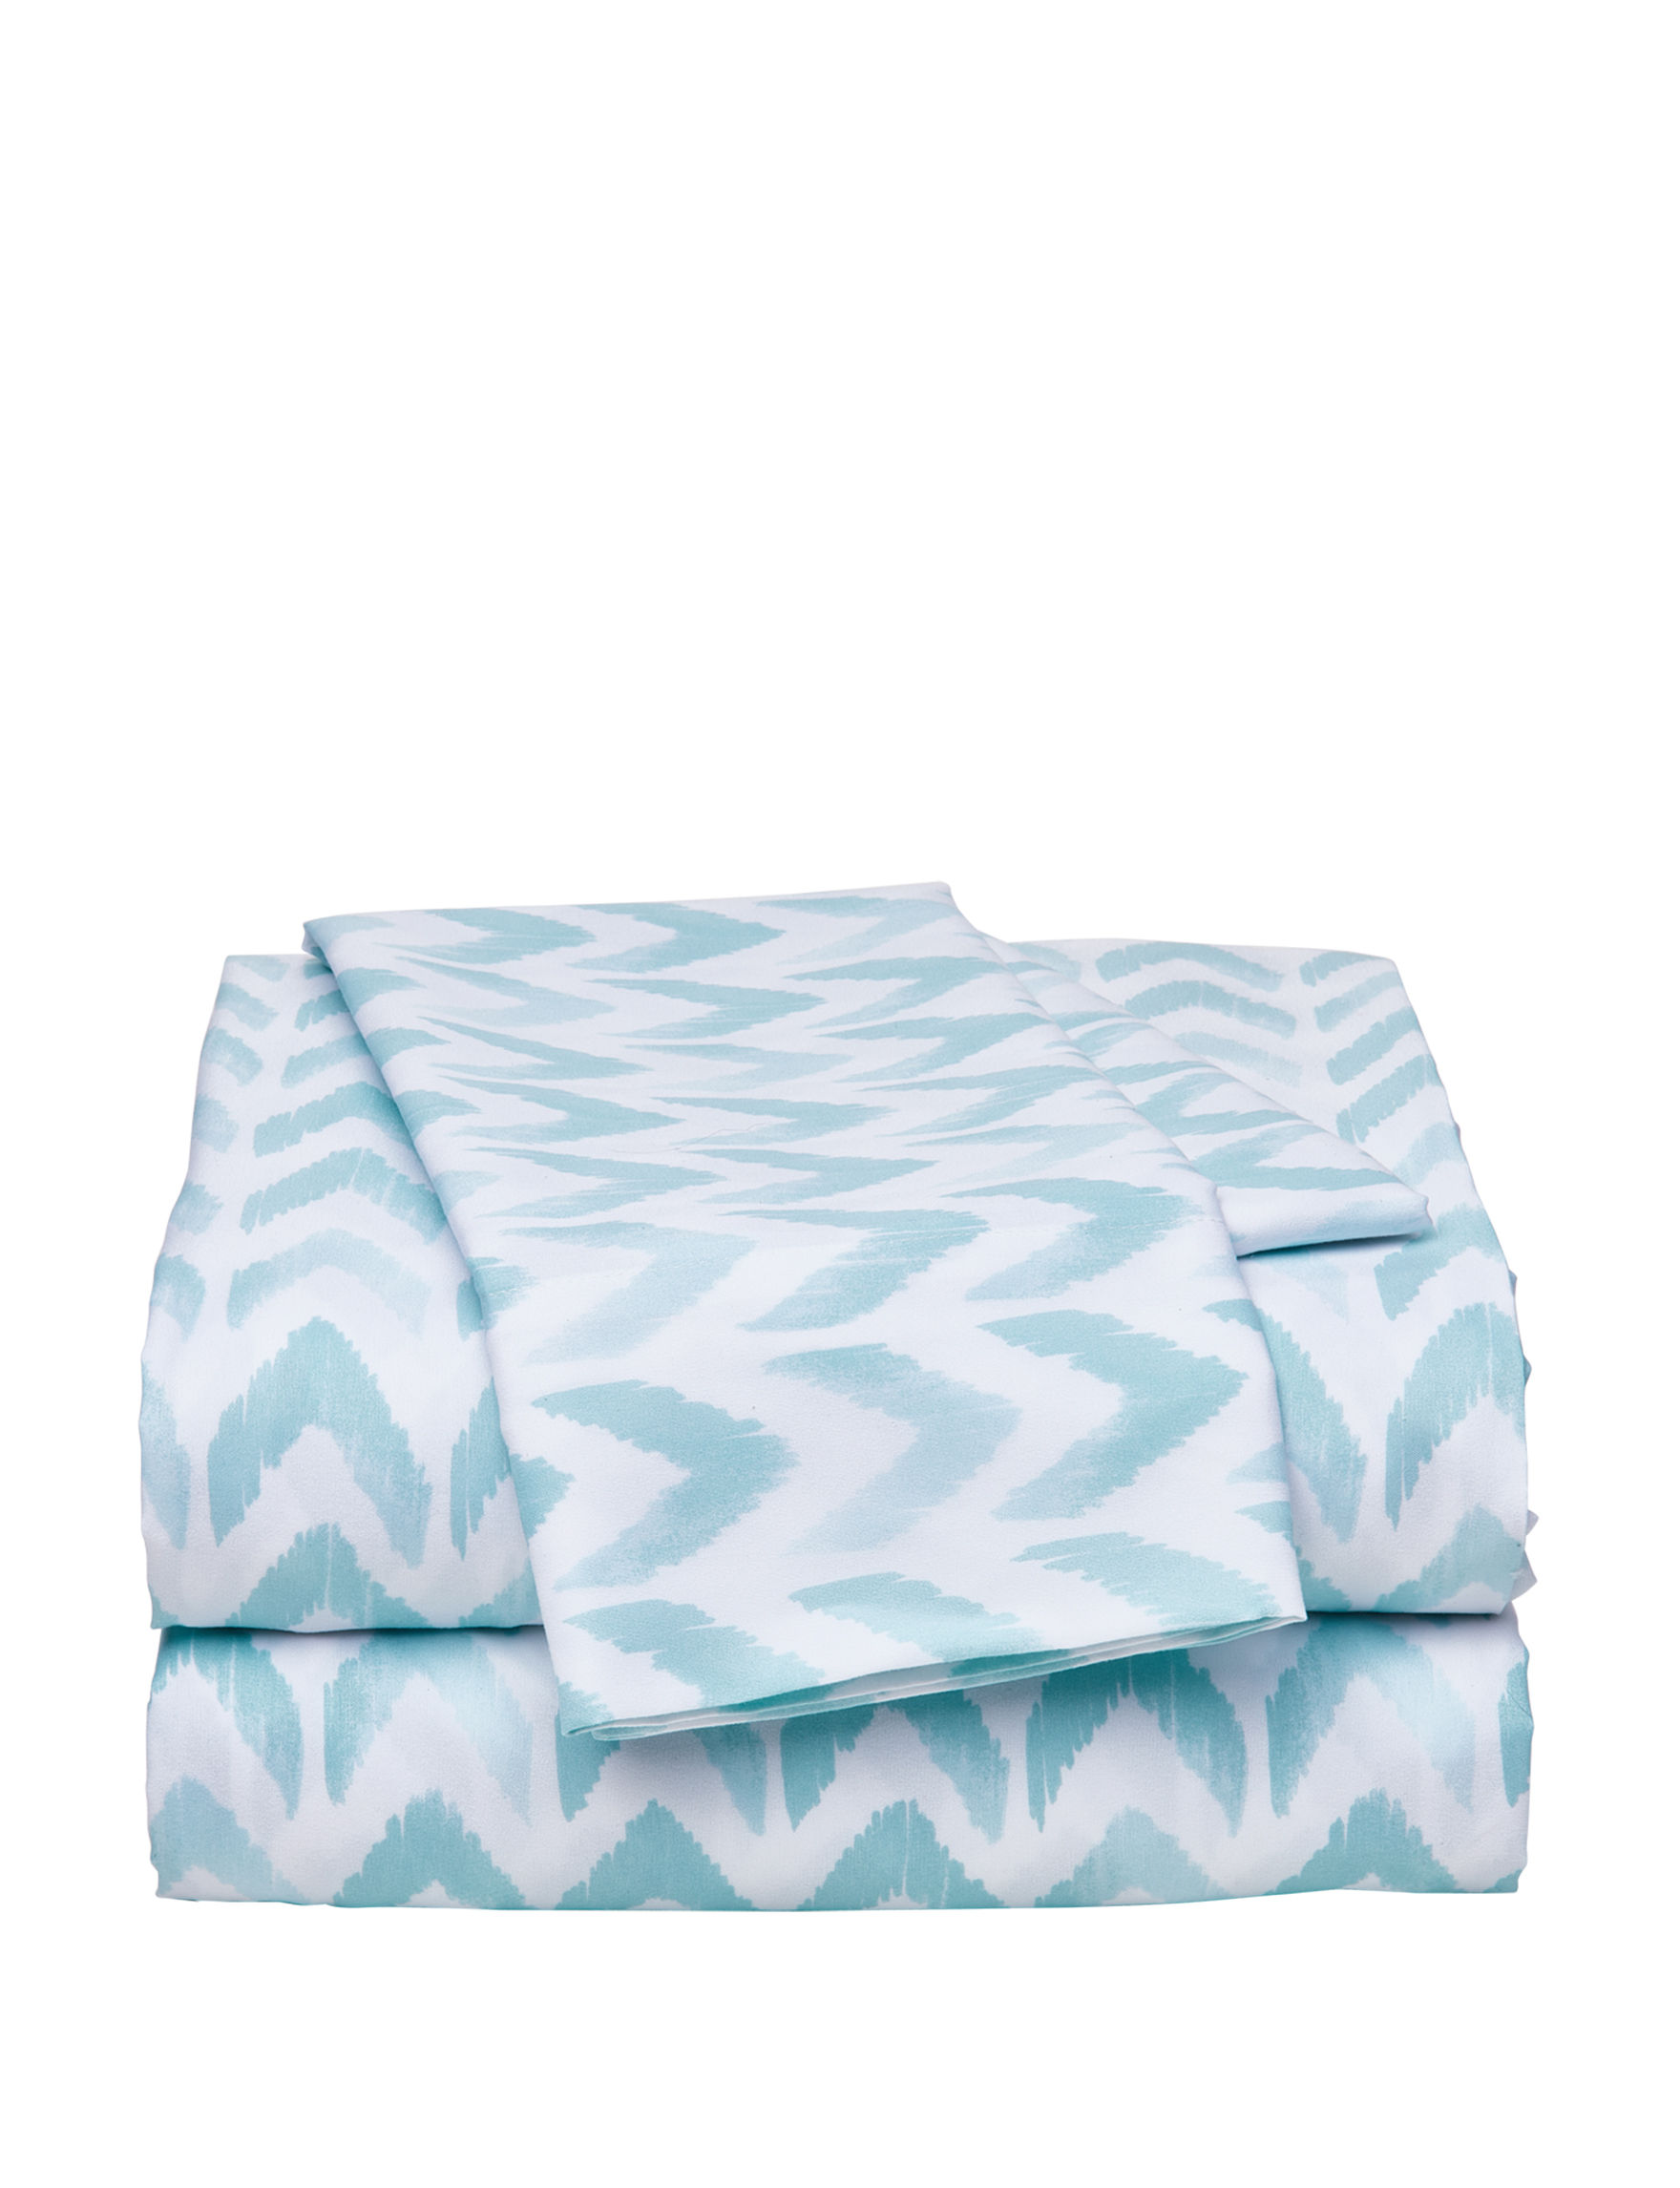 Great Hotels Collection White Sheets & Pillowcases